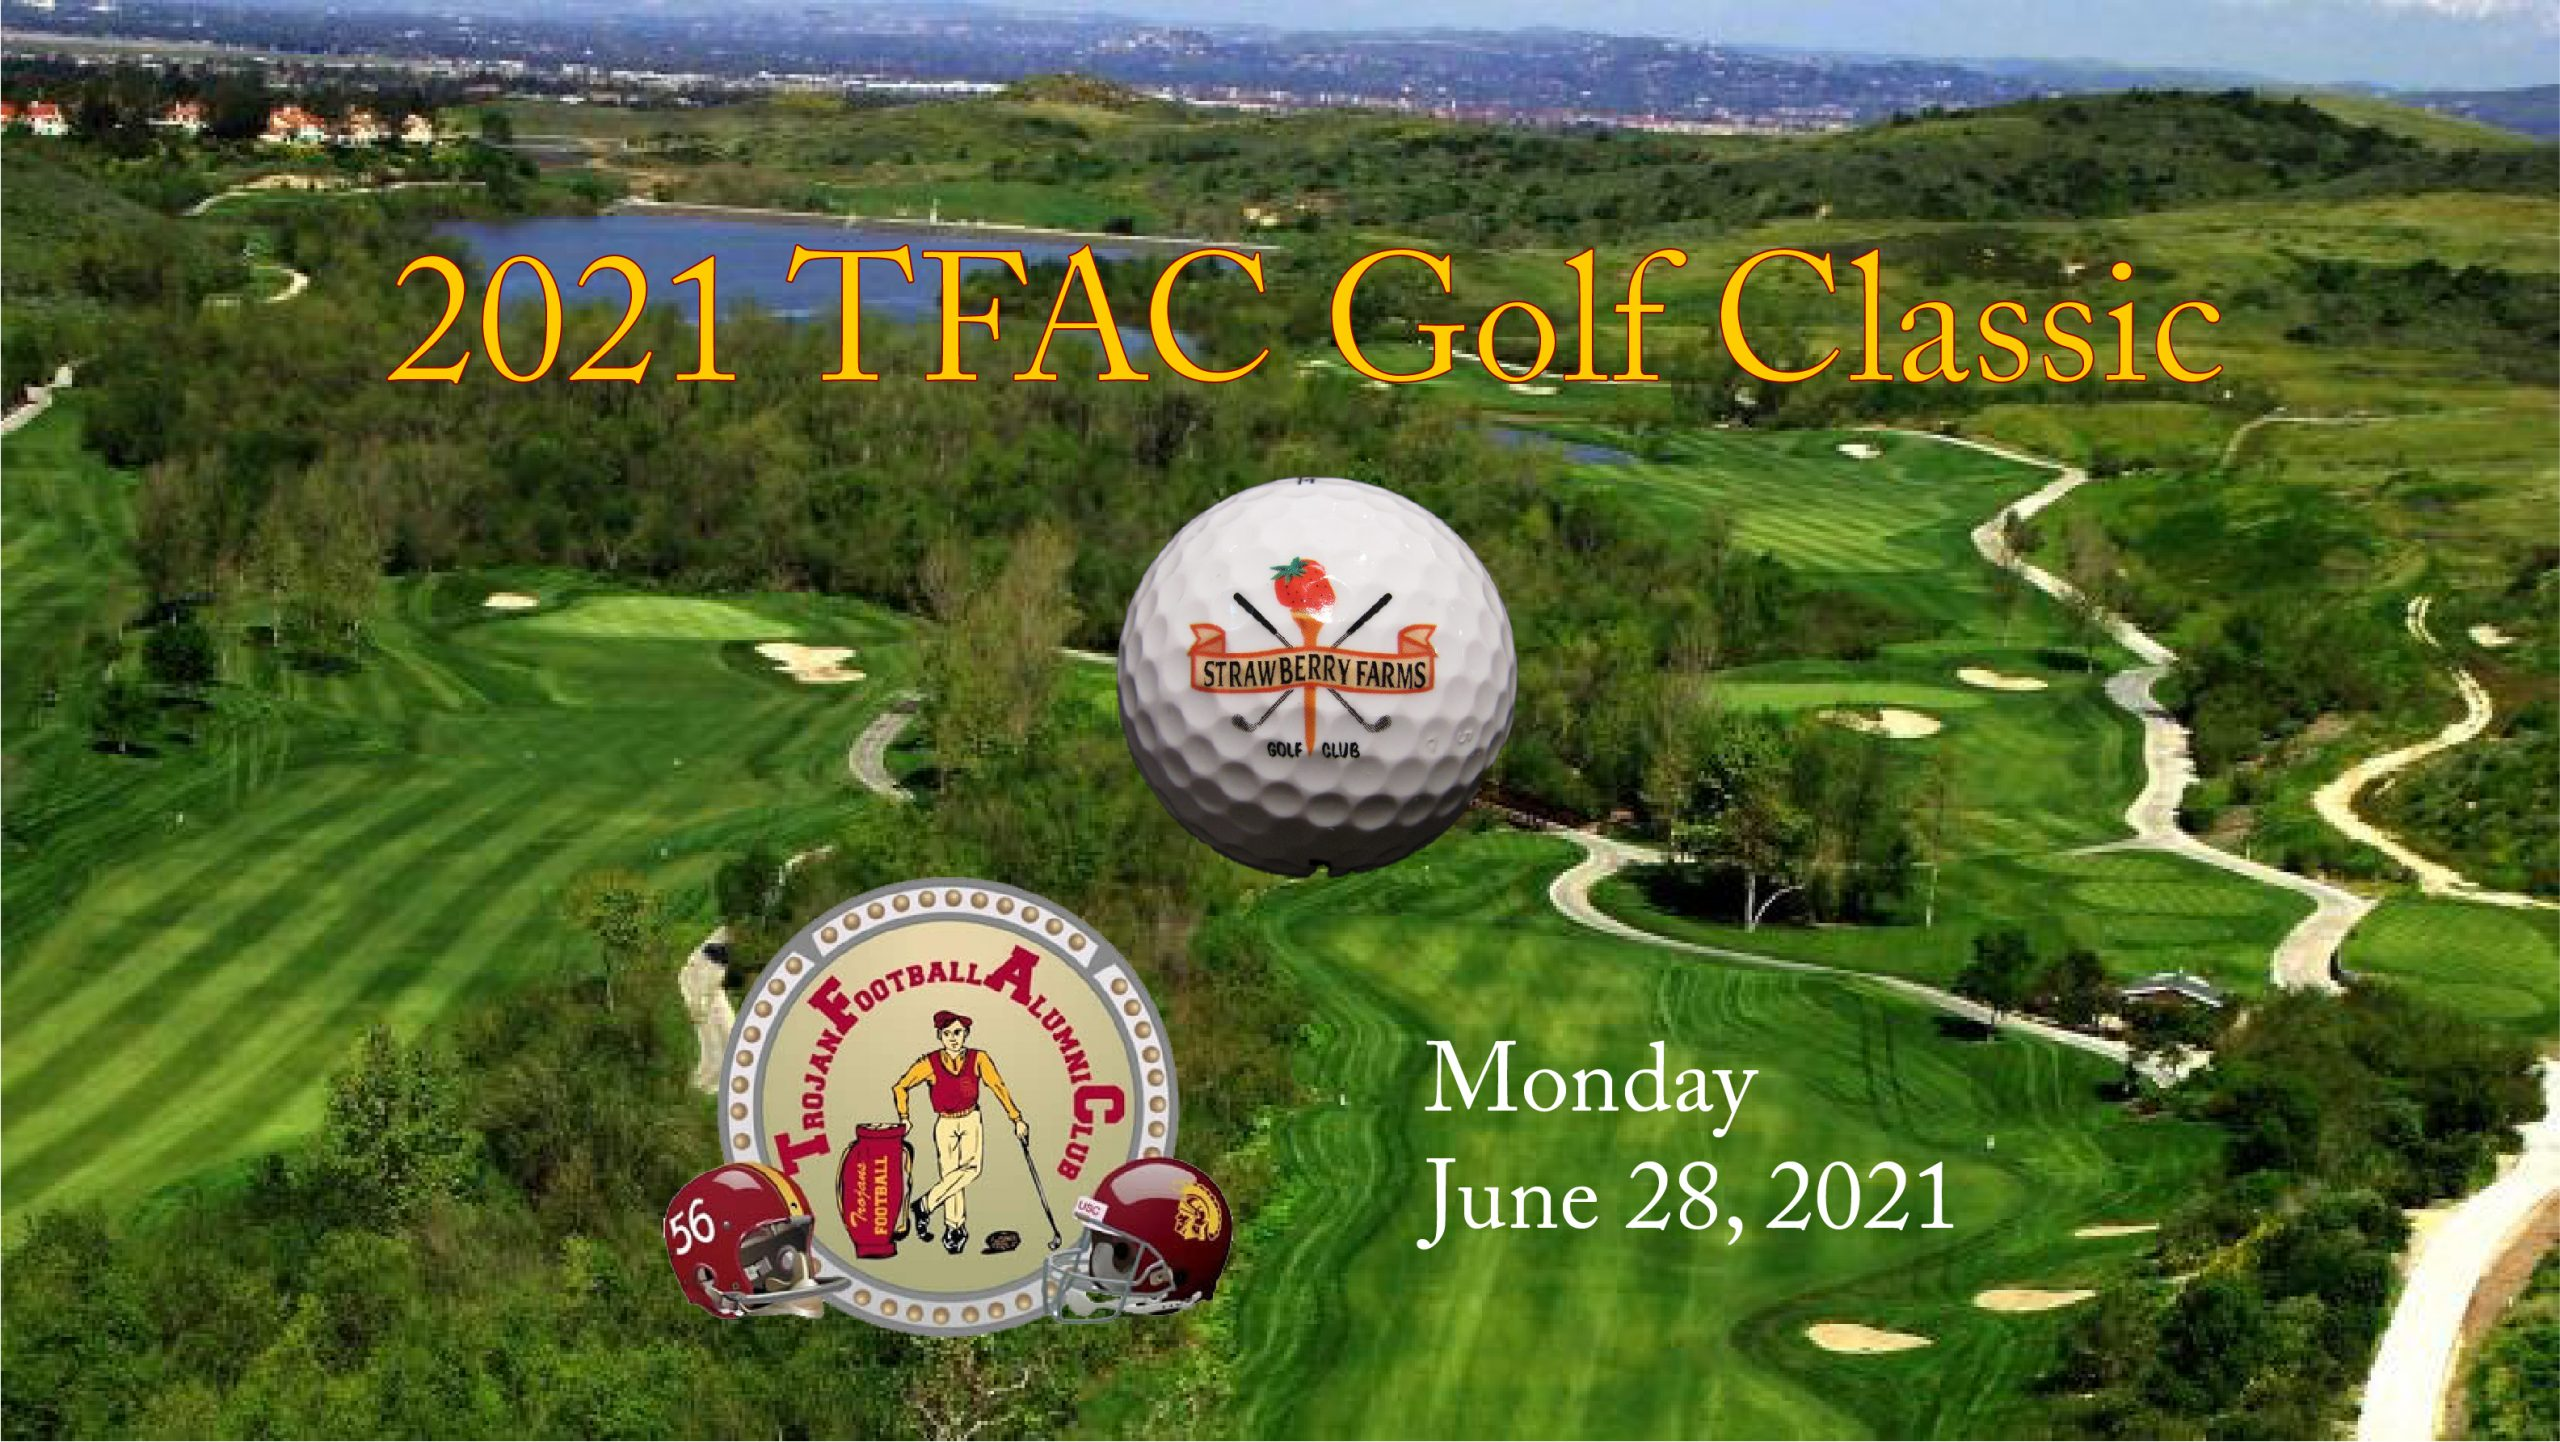 2021 TFAC Golf Classic at Strawberry Farms Golf Course